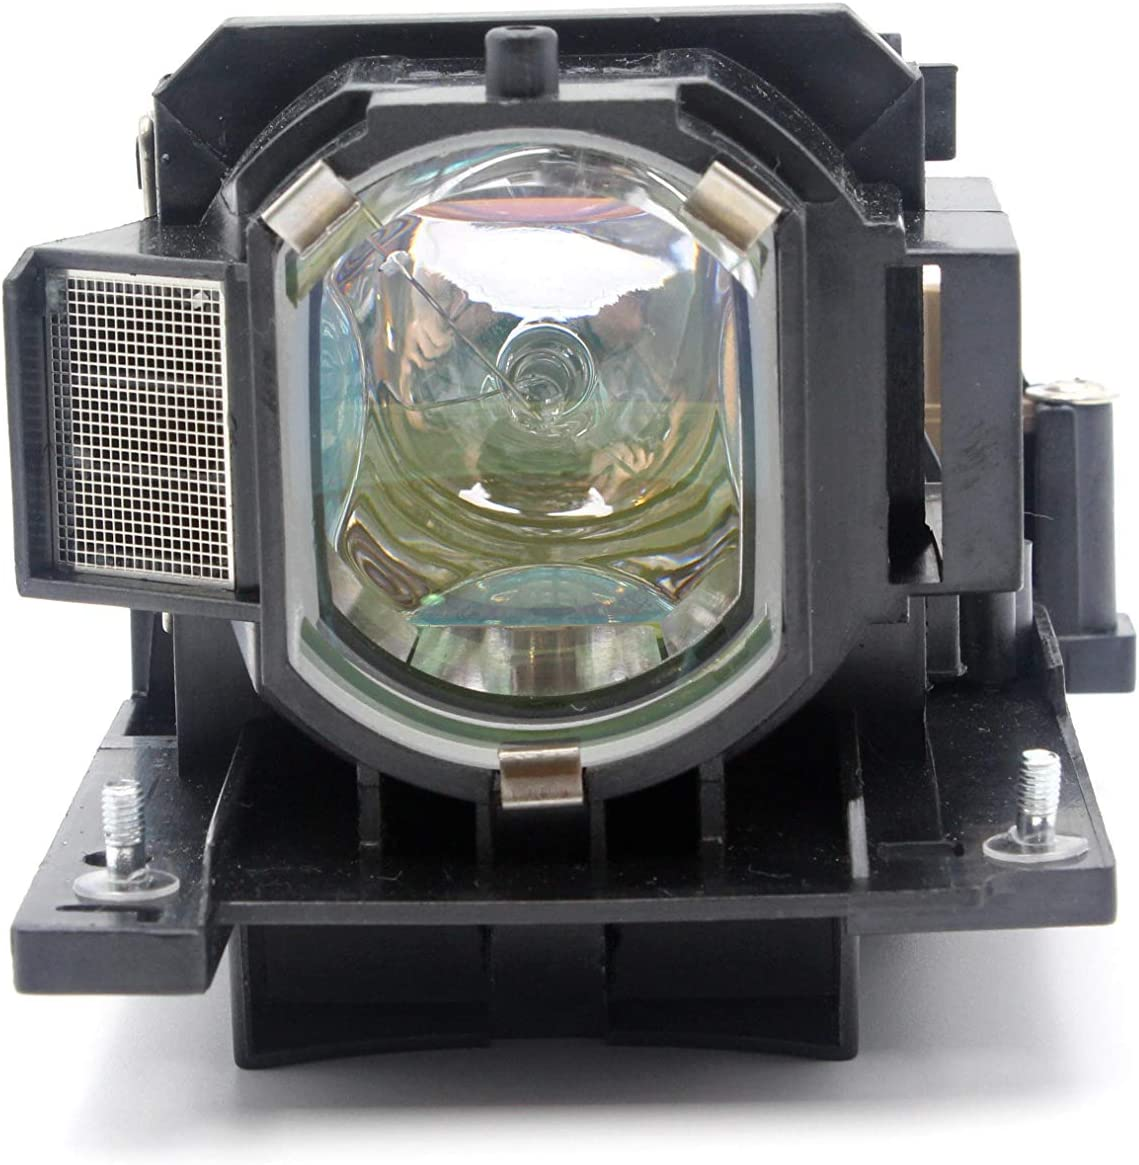 Emazne SP-LAMP-064 Premium Projector Replacement Compatible Lamp with Housing for InFocus IN5122 InFocus IN5124 Dukane 456-8958H-RJ Imagepro 8957HW-RJ 8959A Christie 003-120730-01 LW41 LX41 3M X56